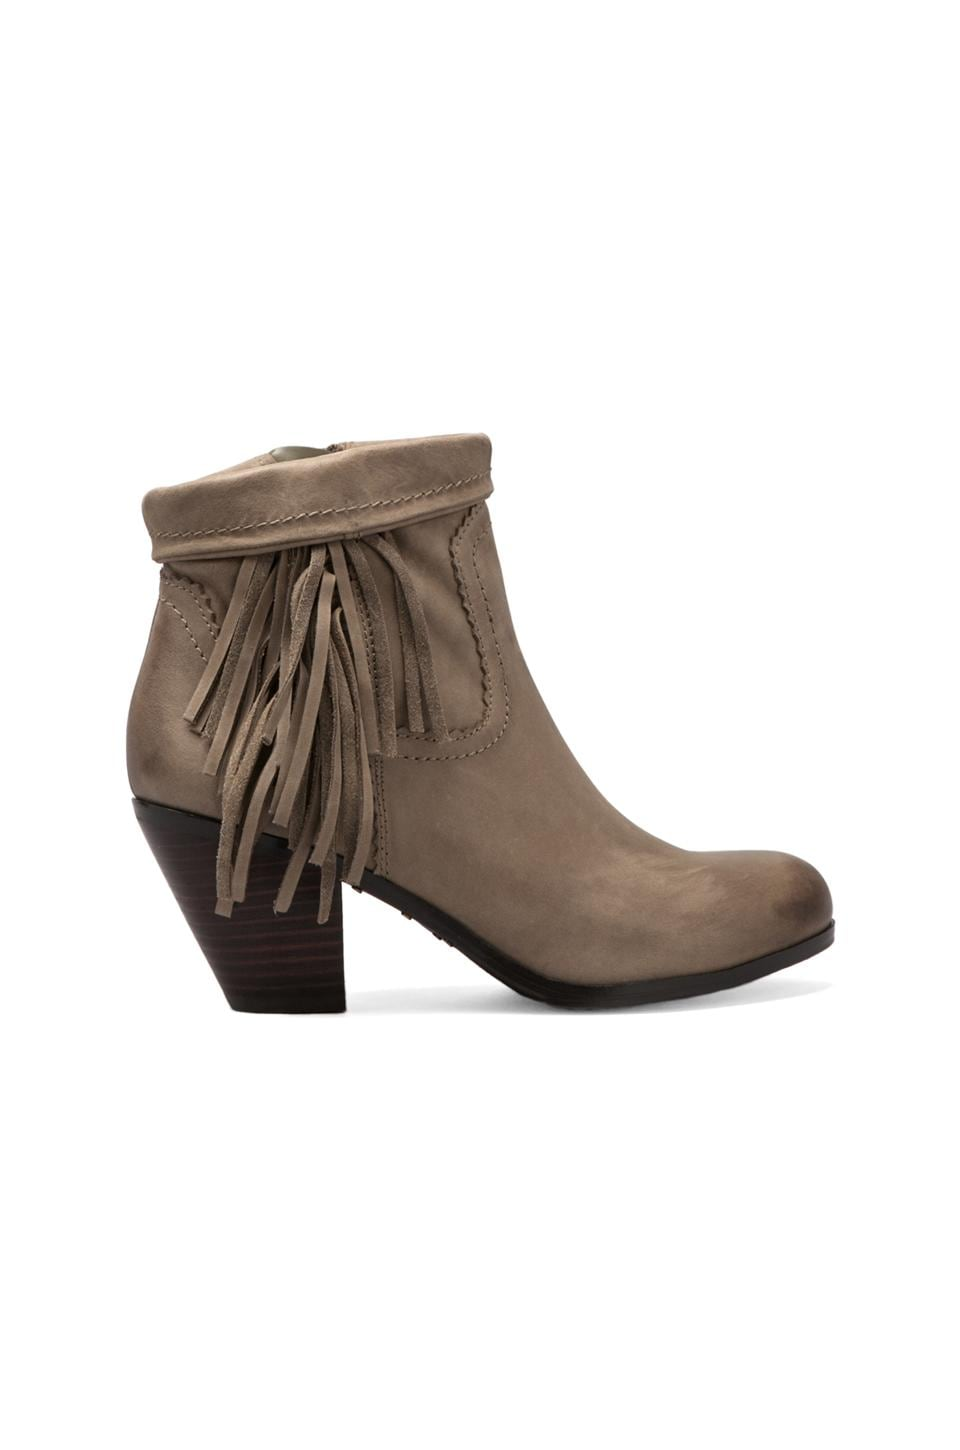 Sam Edelman Louie Bootie in Olive